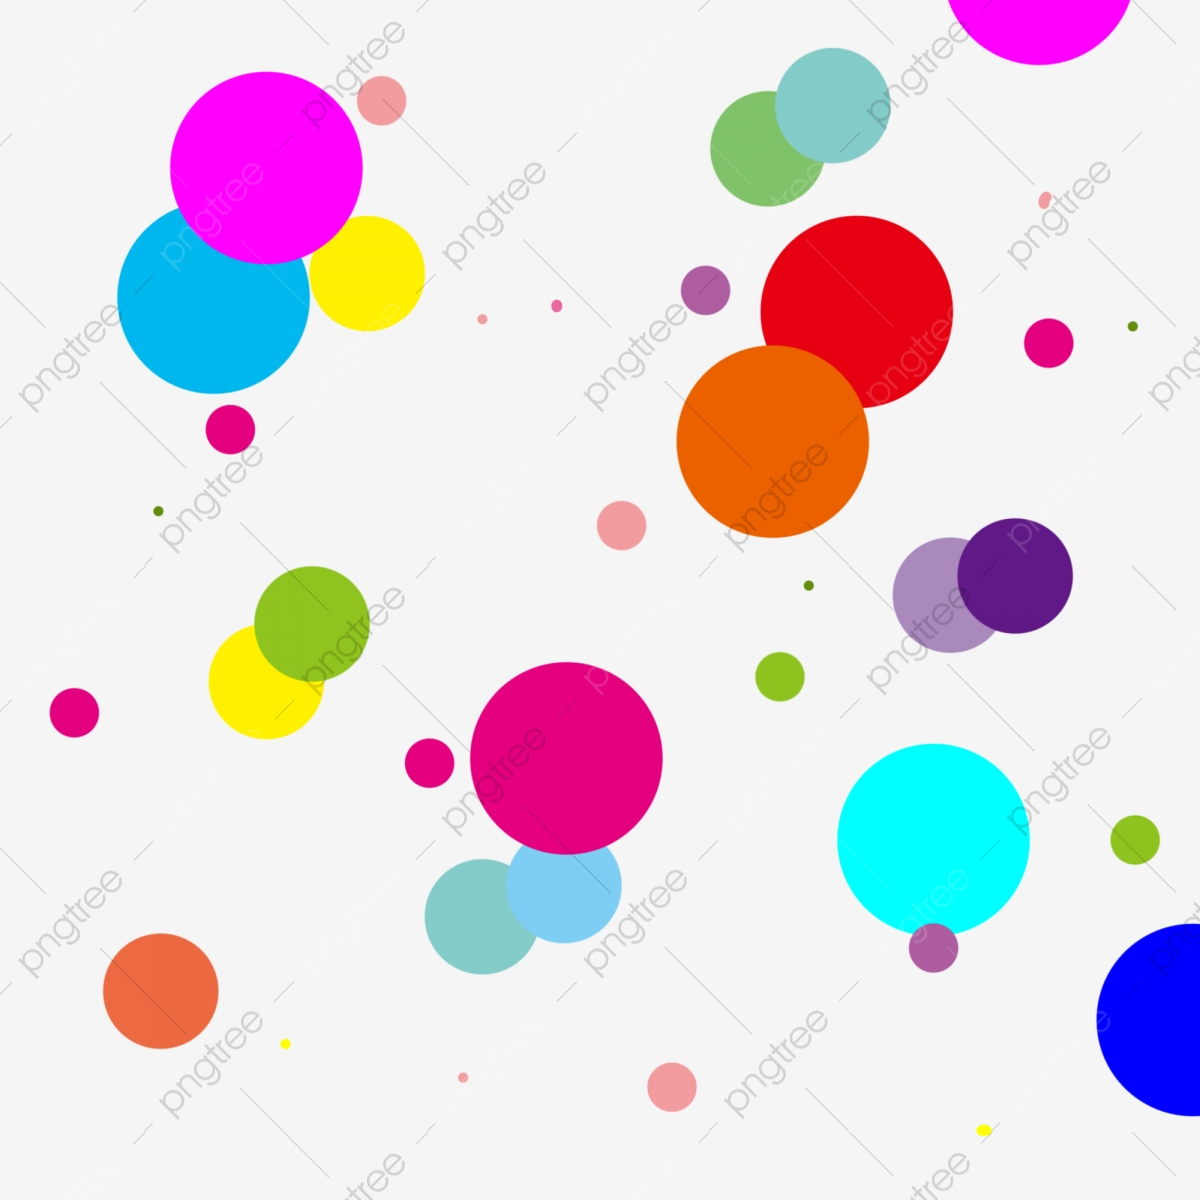 Colorful Abstract Dot Spot Desktop Wallpaper Colorful